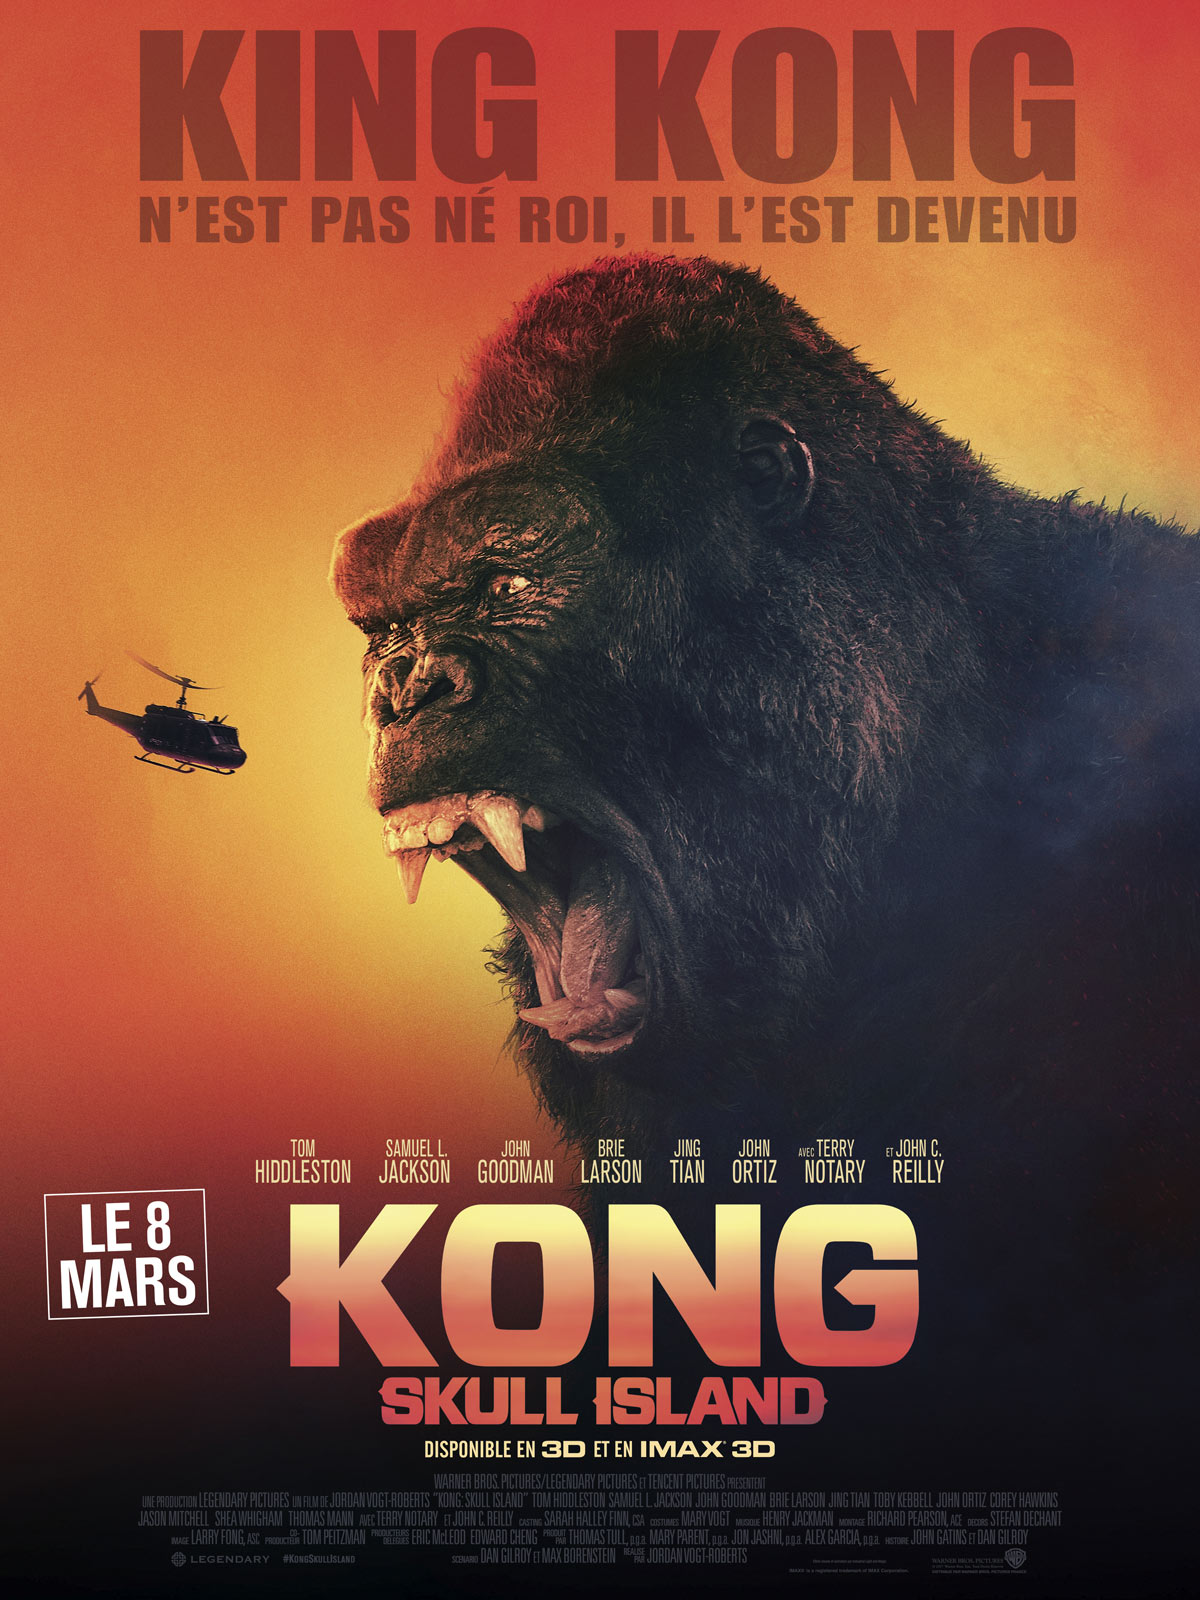 Kong: Skull Island Streaming 1080p HDLight